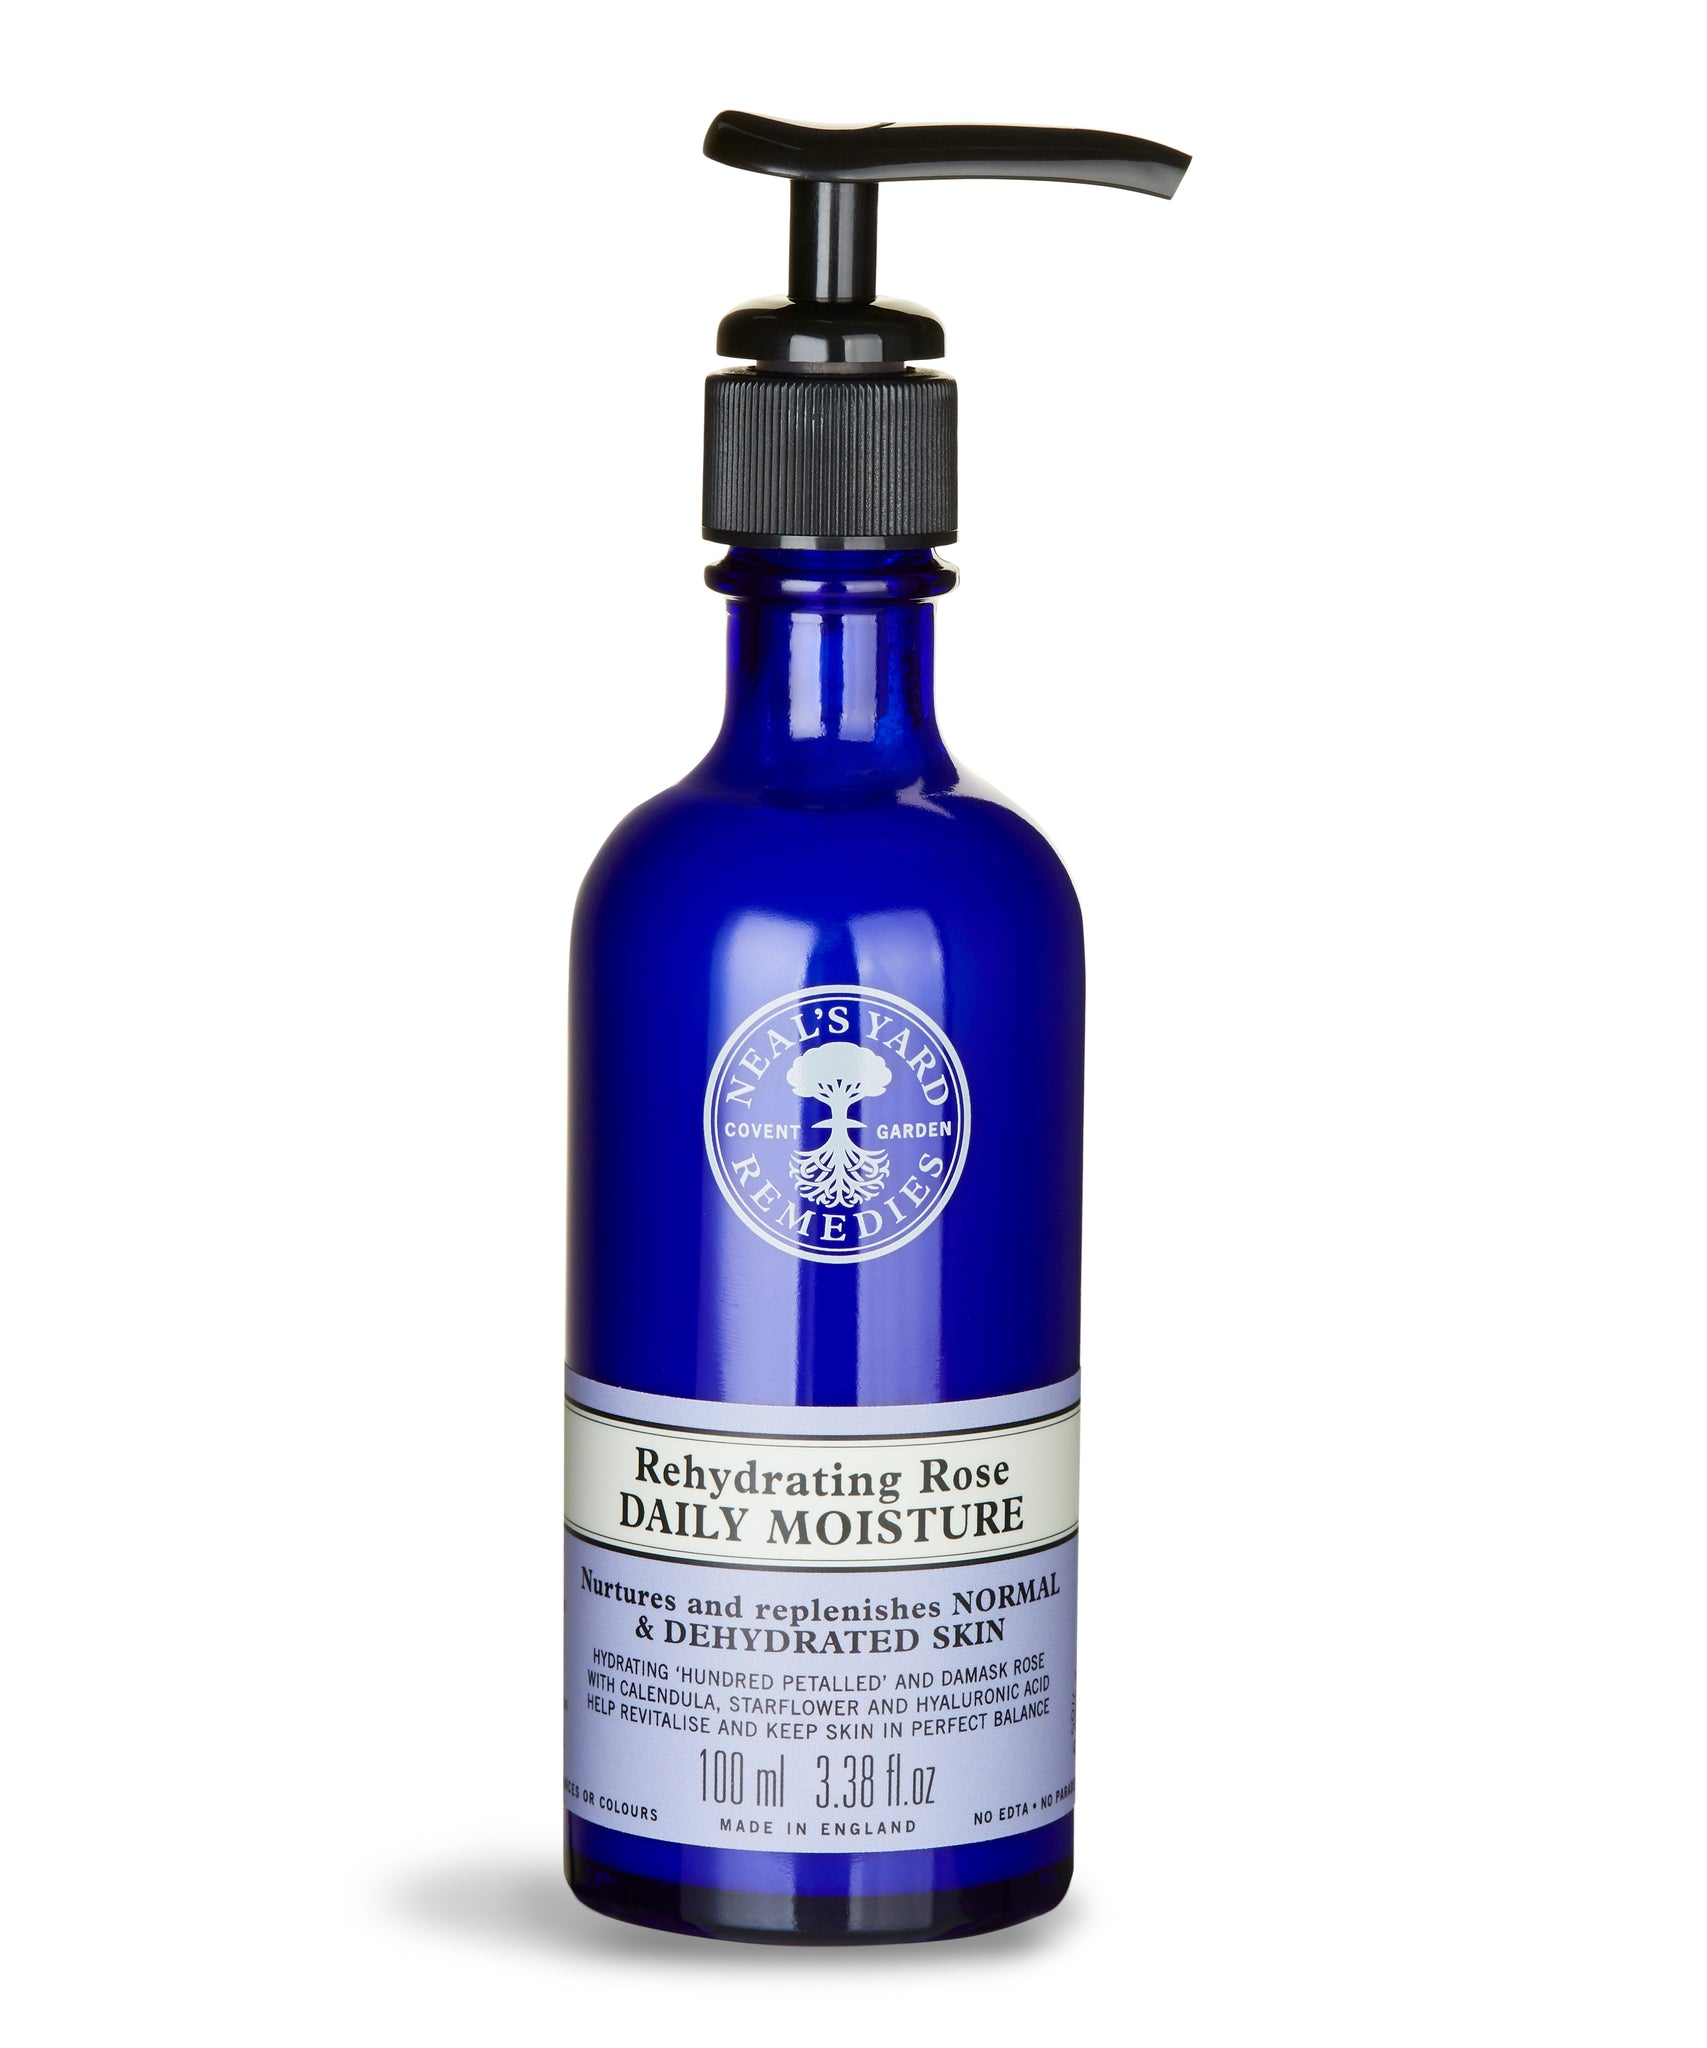 Rehydrating Rose Daily Moisture by Neal's Yard Remedies